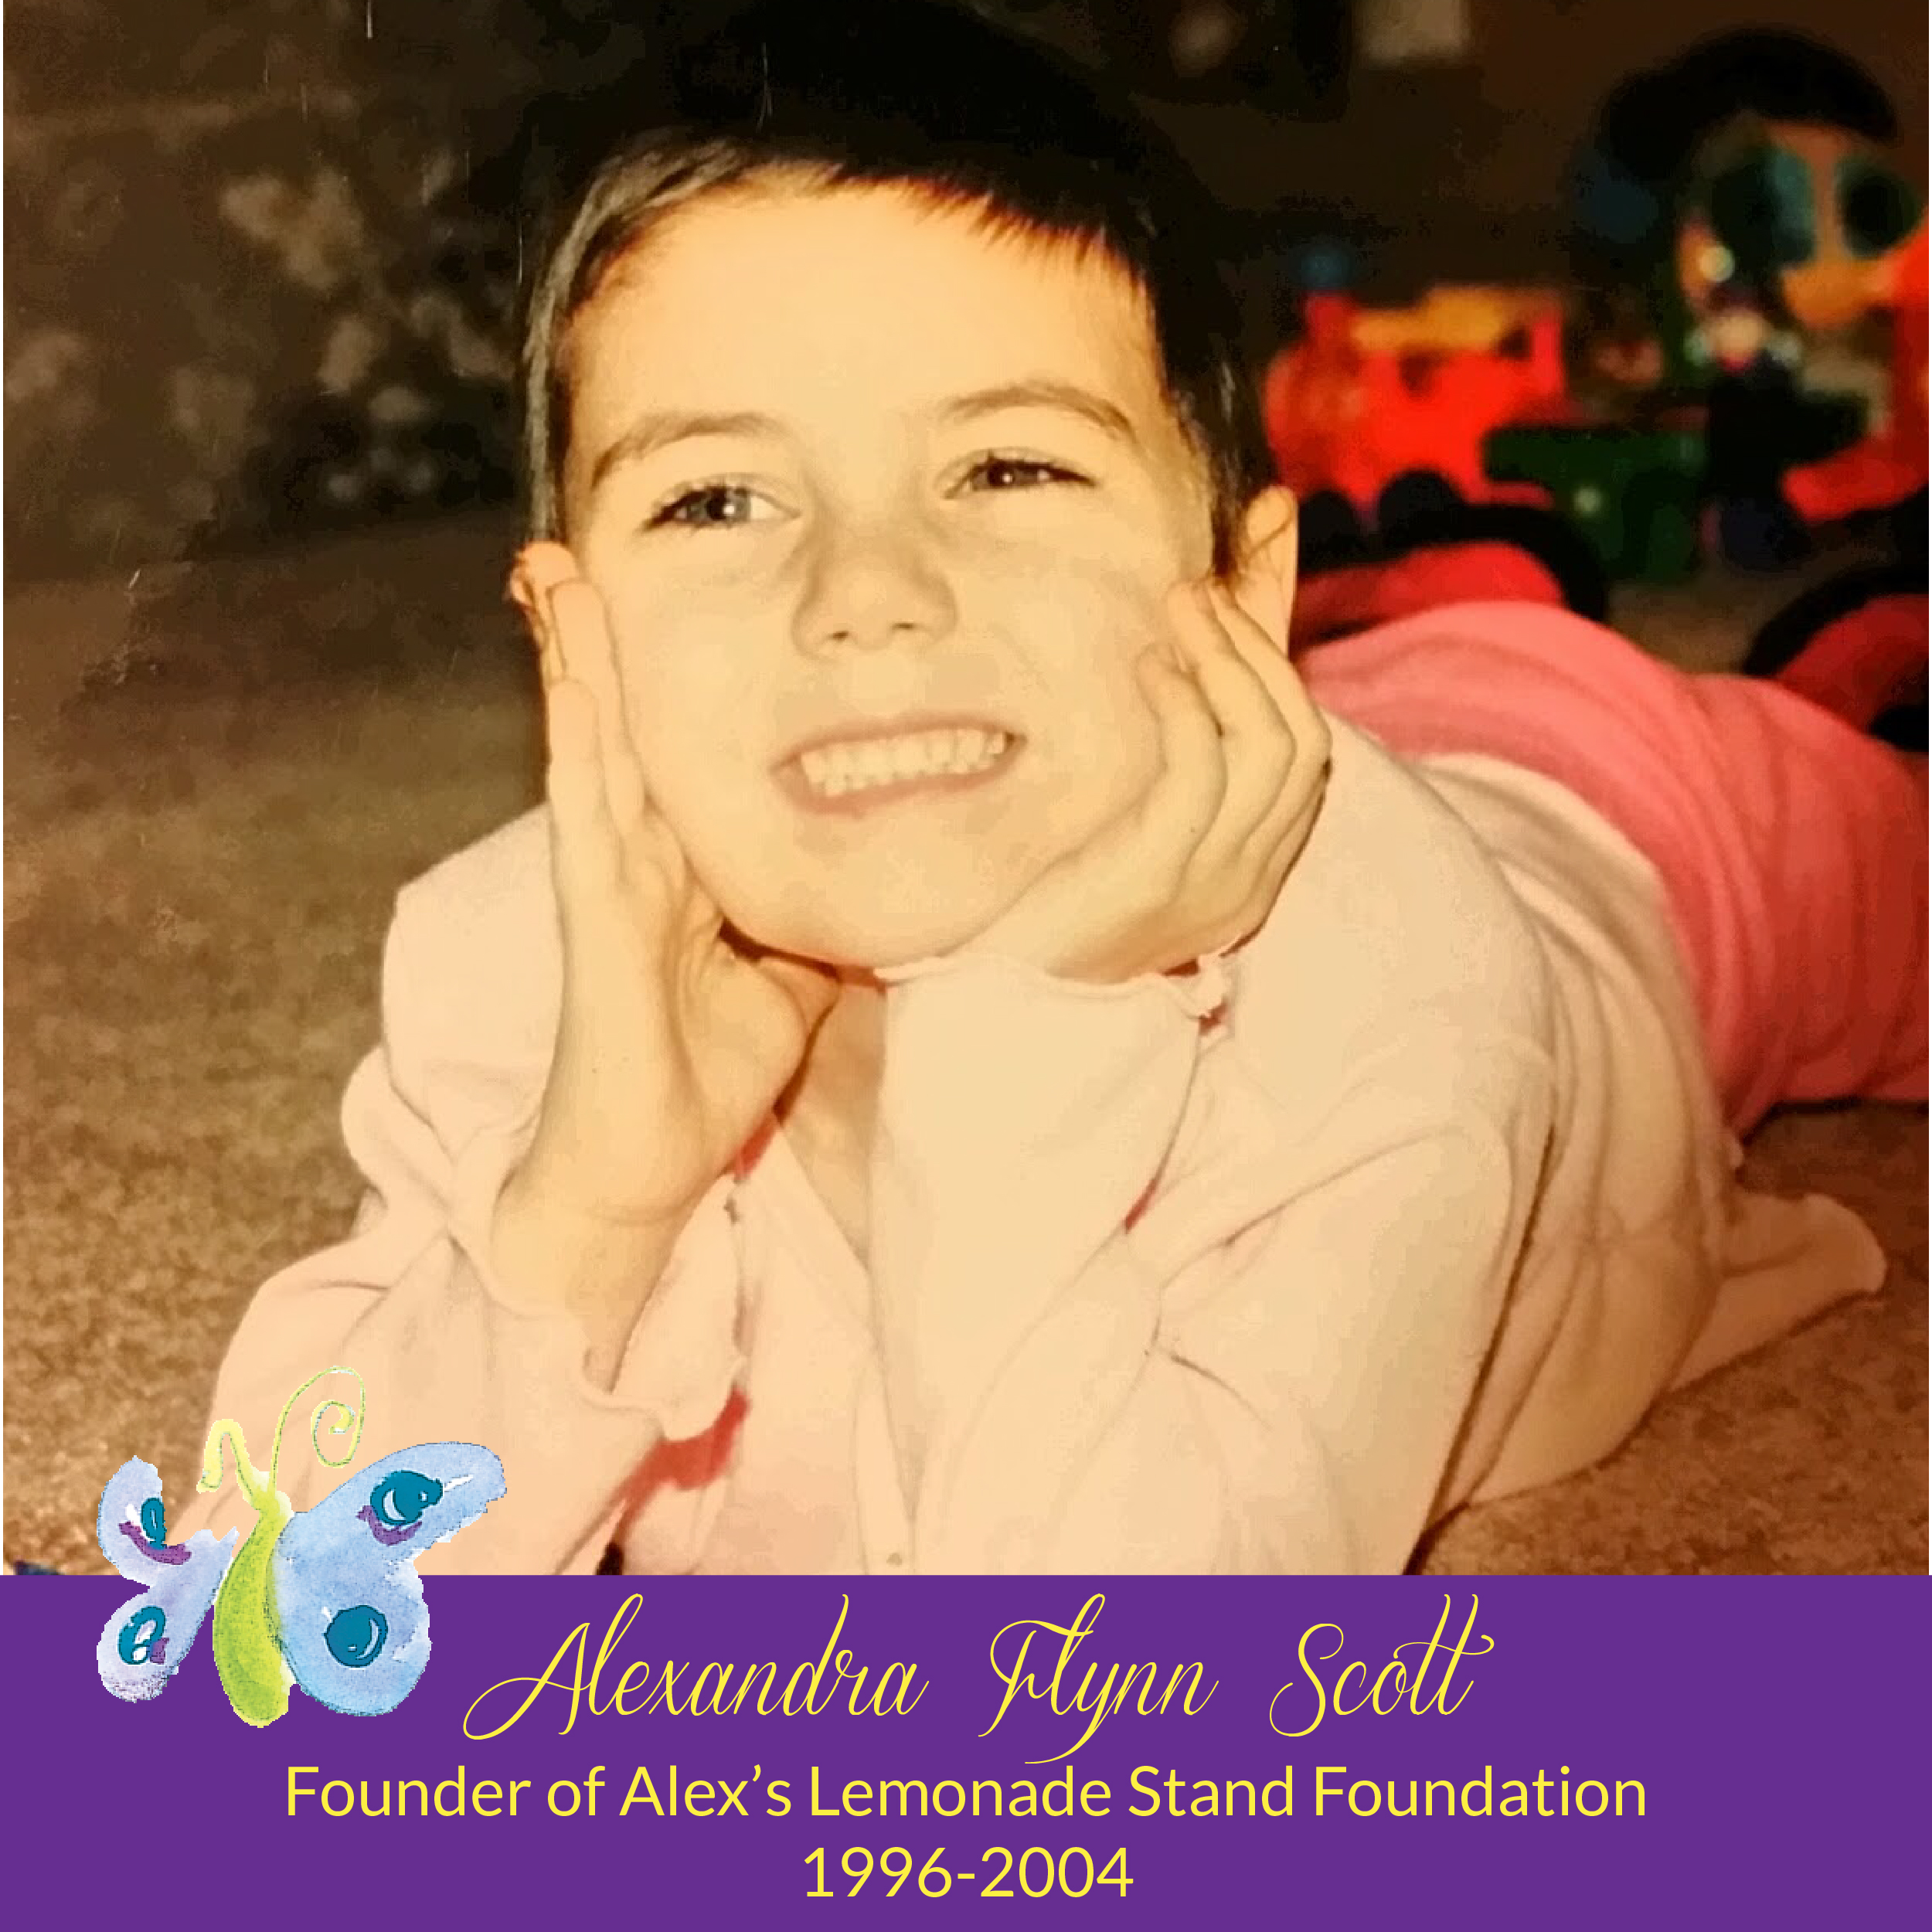 Today, January 18, 2018, would have been my daughter Alex's 22nd birthday; most of you know her as the founder of Alex's Lemonade Stand Foundation.  Every year as Alex's birthday rolls around, I wonder what is left to say about Alex. I have shared so much about her amazing life, her heartbreaking struggles and her extraordinary ability to persist.  She was a special girl that is certain. I am proud to be her mom.